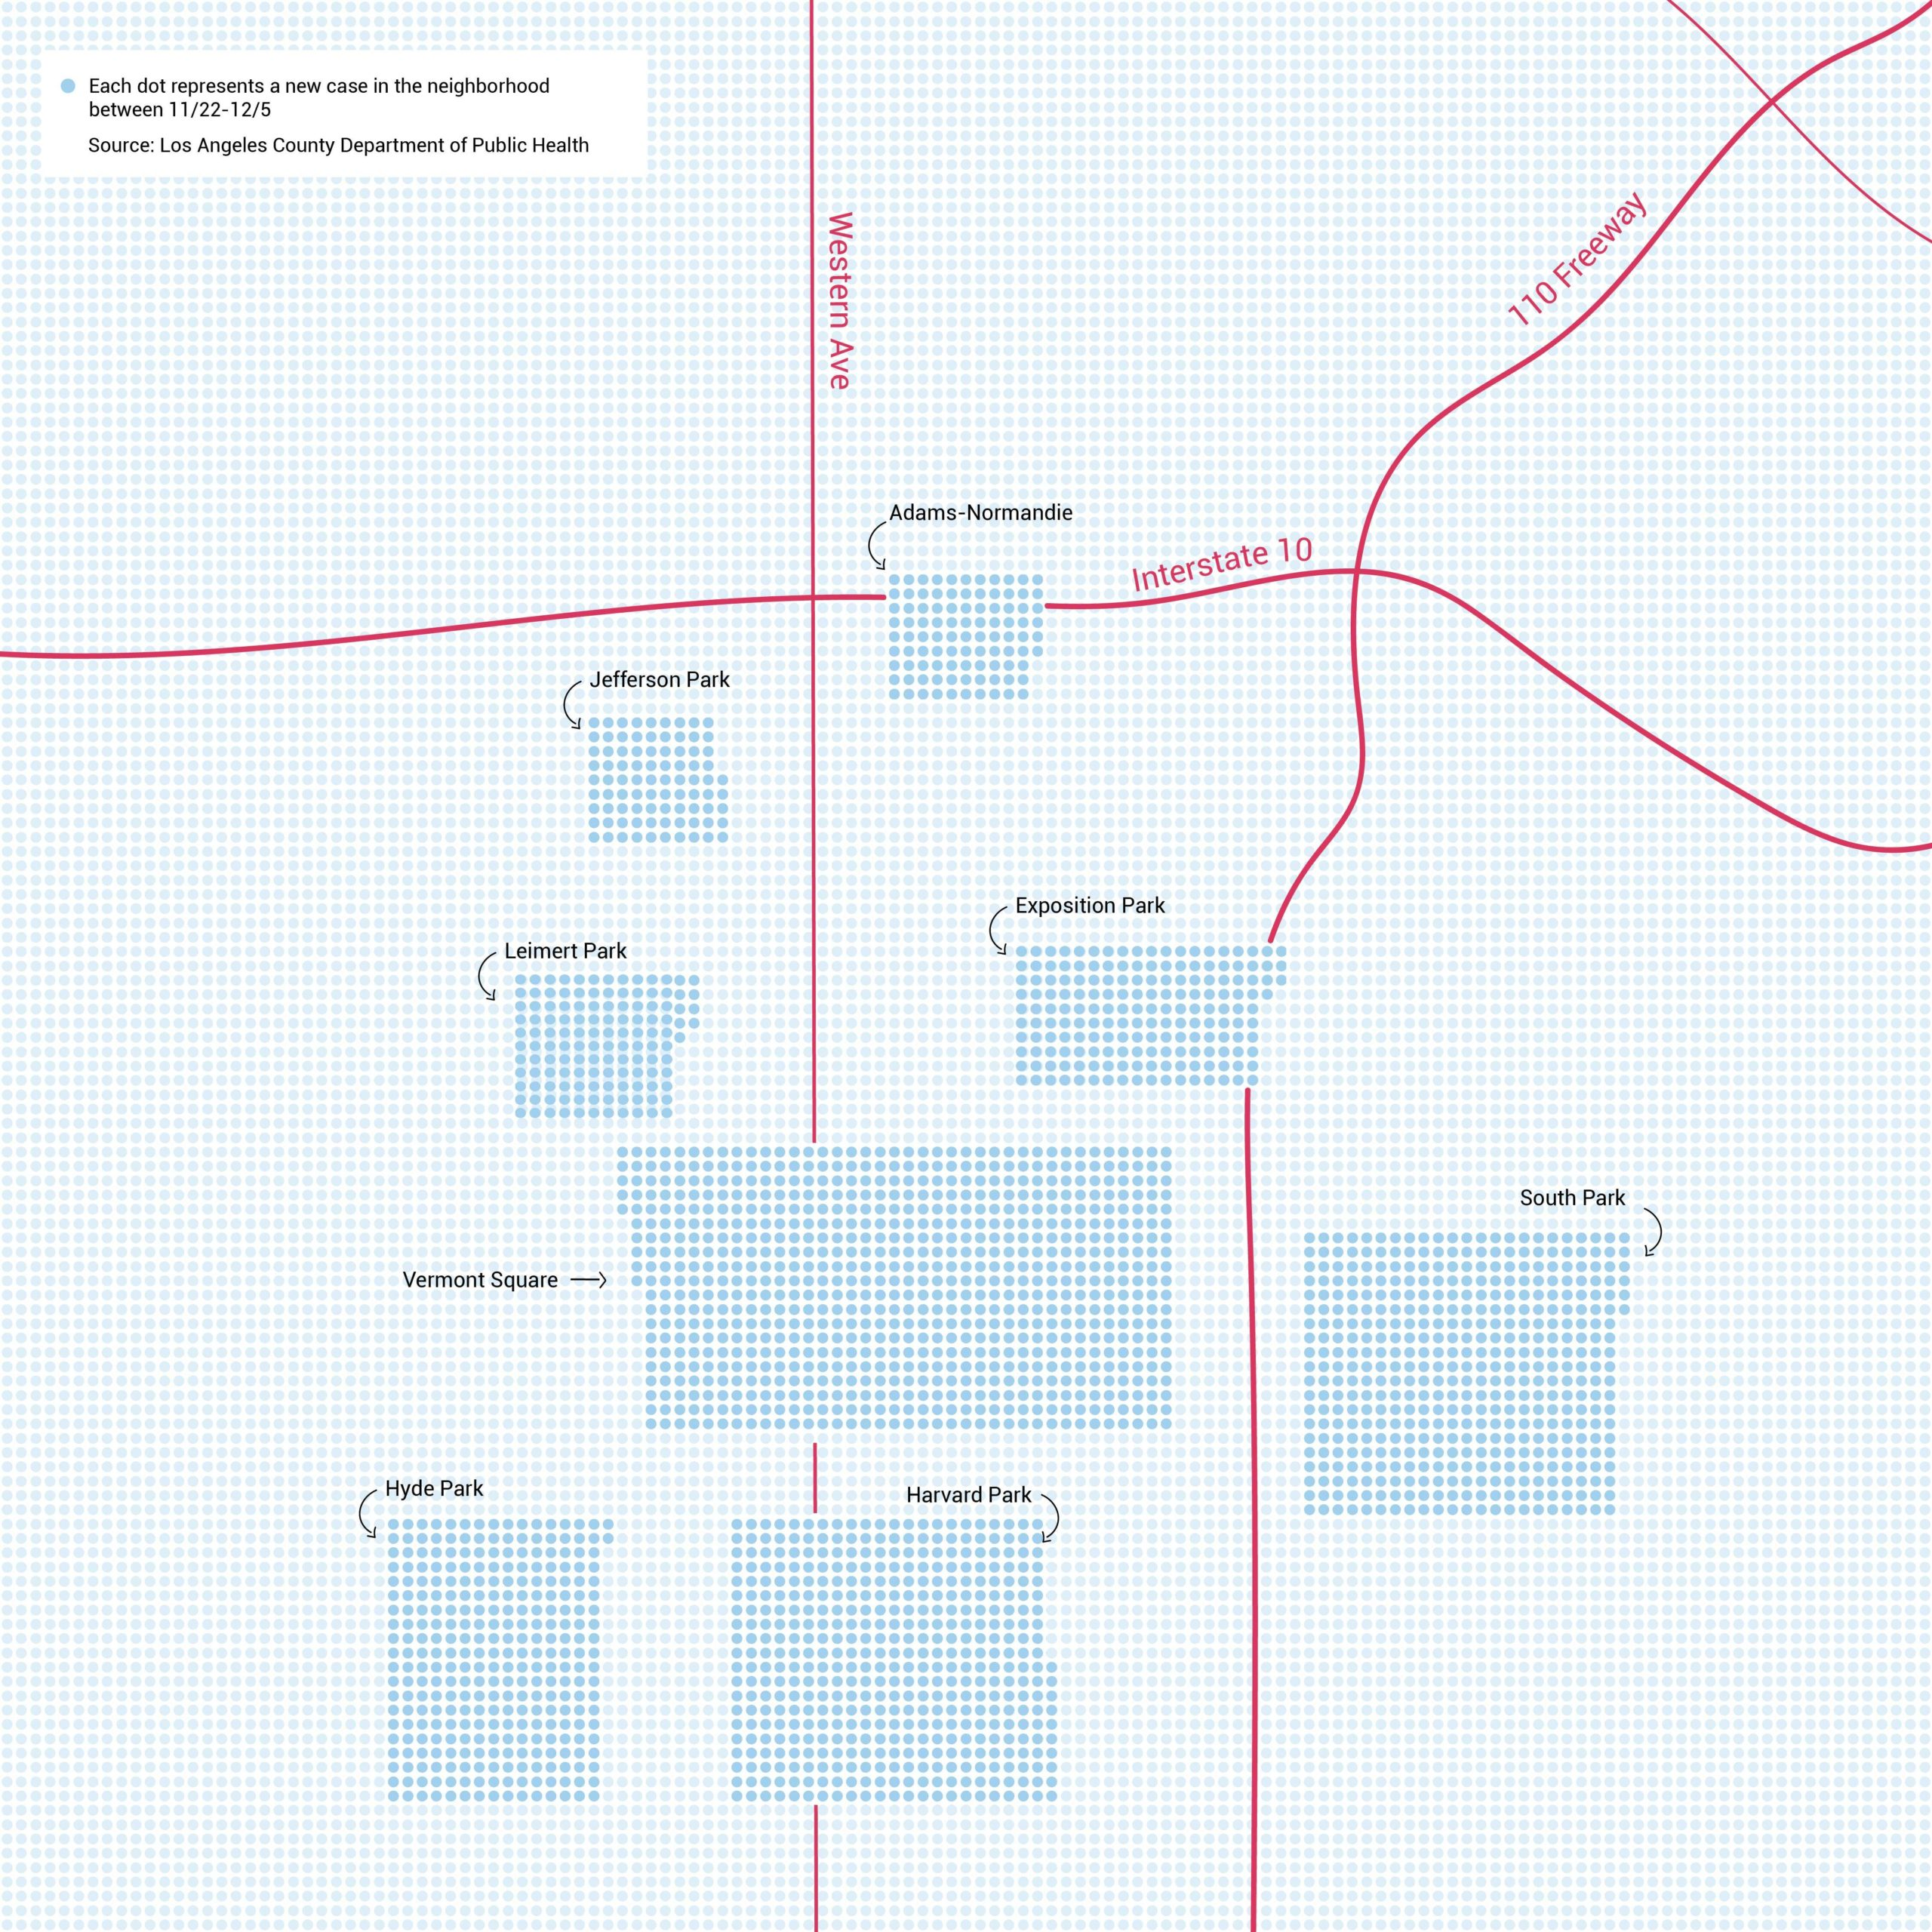 Map of South LA neighborhoods with the sharpest COV ID-19 spike